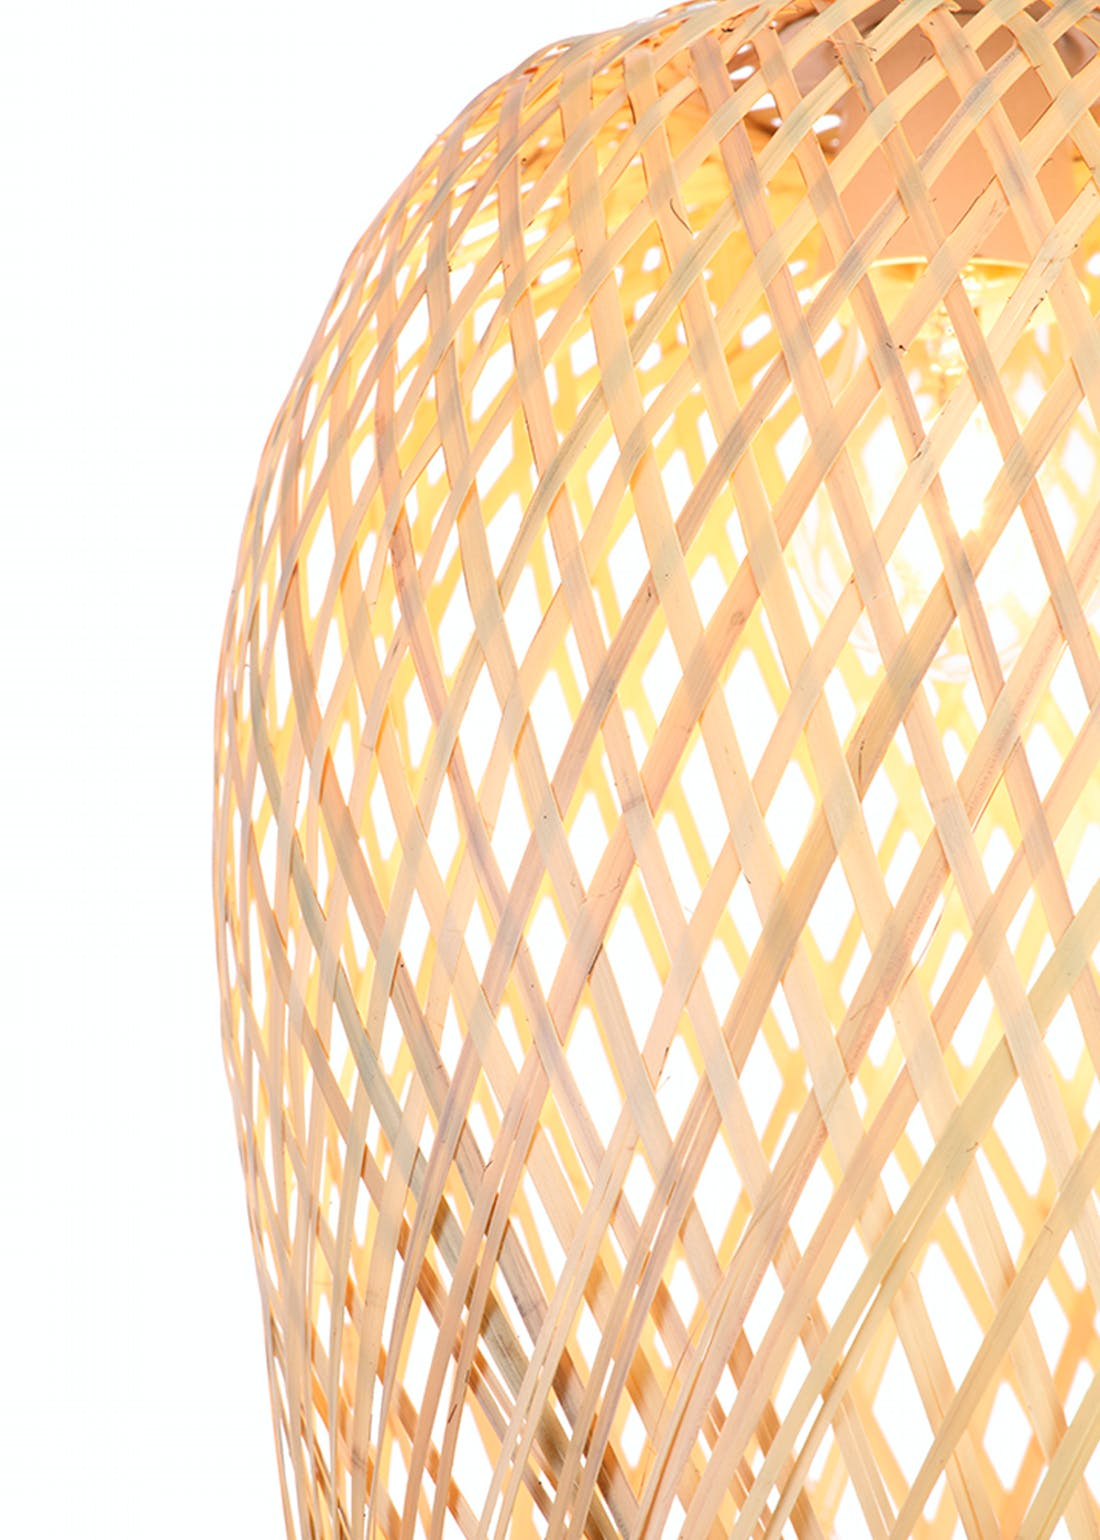 Natural Woven Easy Fit Shade (H40cm x W24cm)